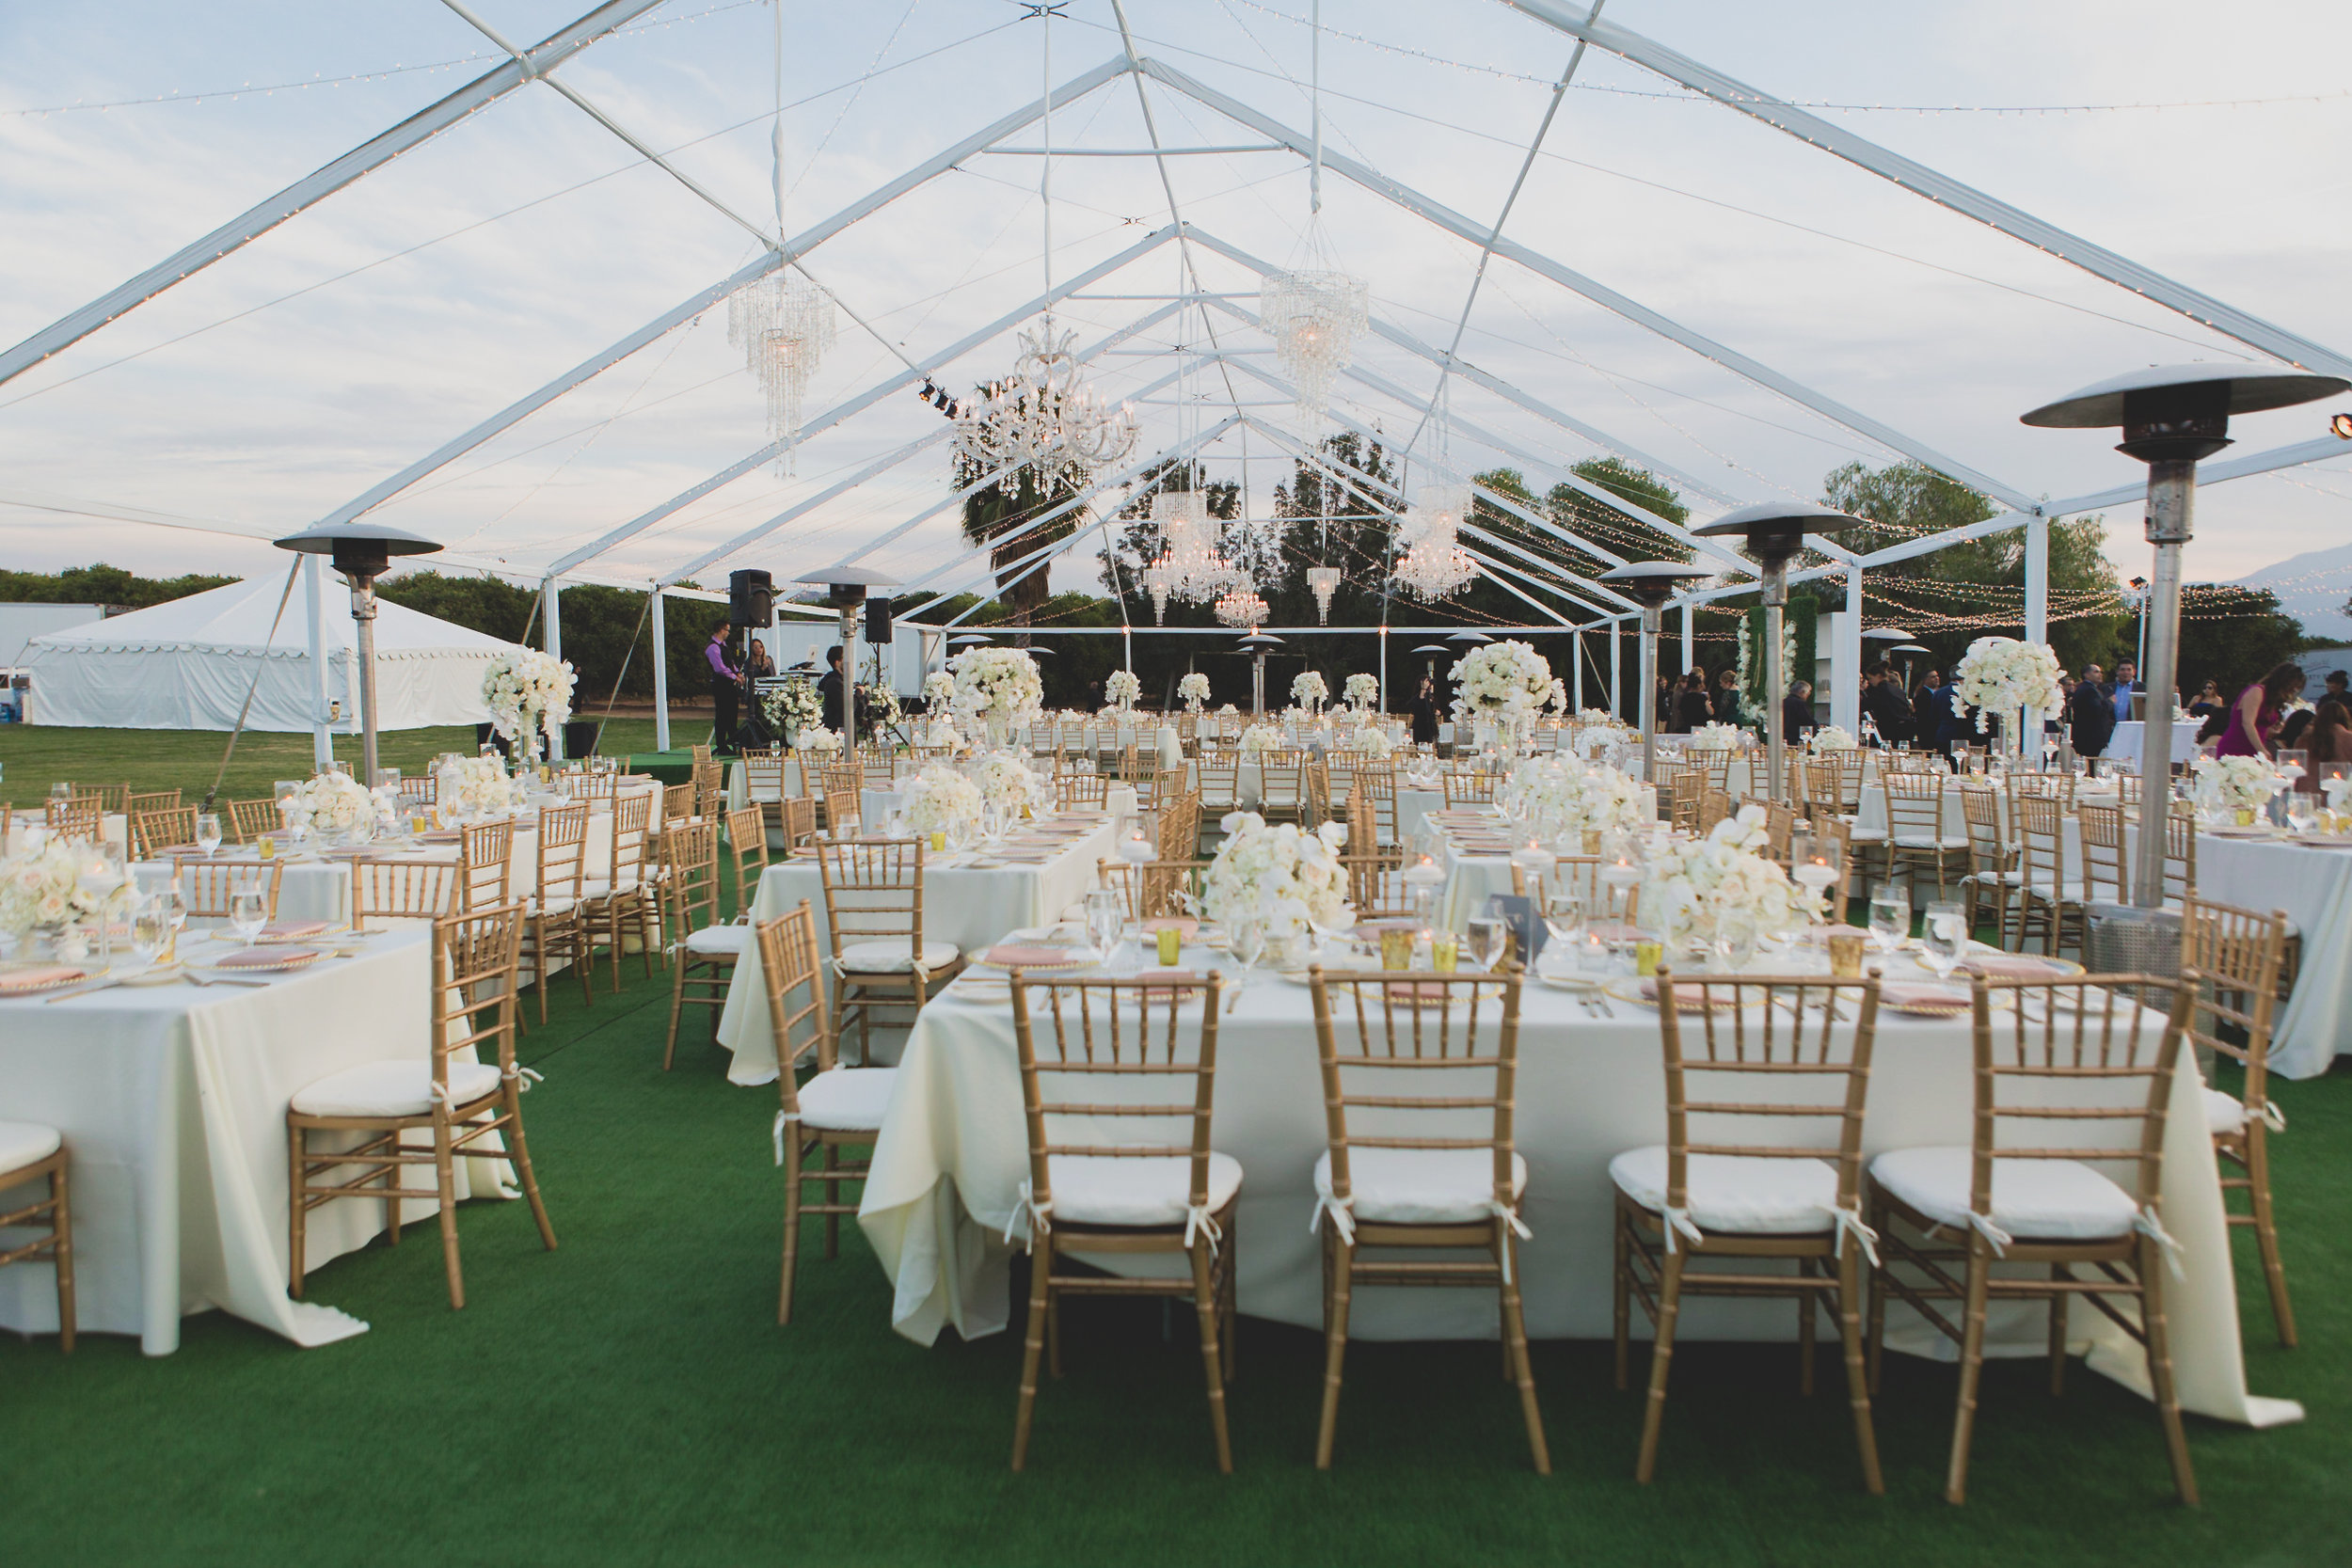 An outdoor venue with a pointed glass roof and tables arranged for a wedding reception.